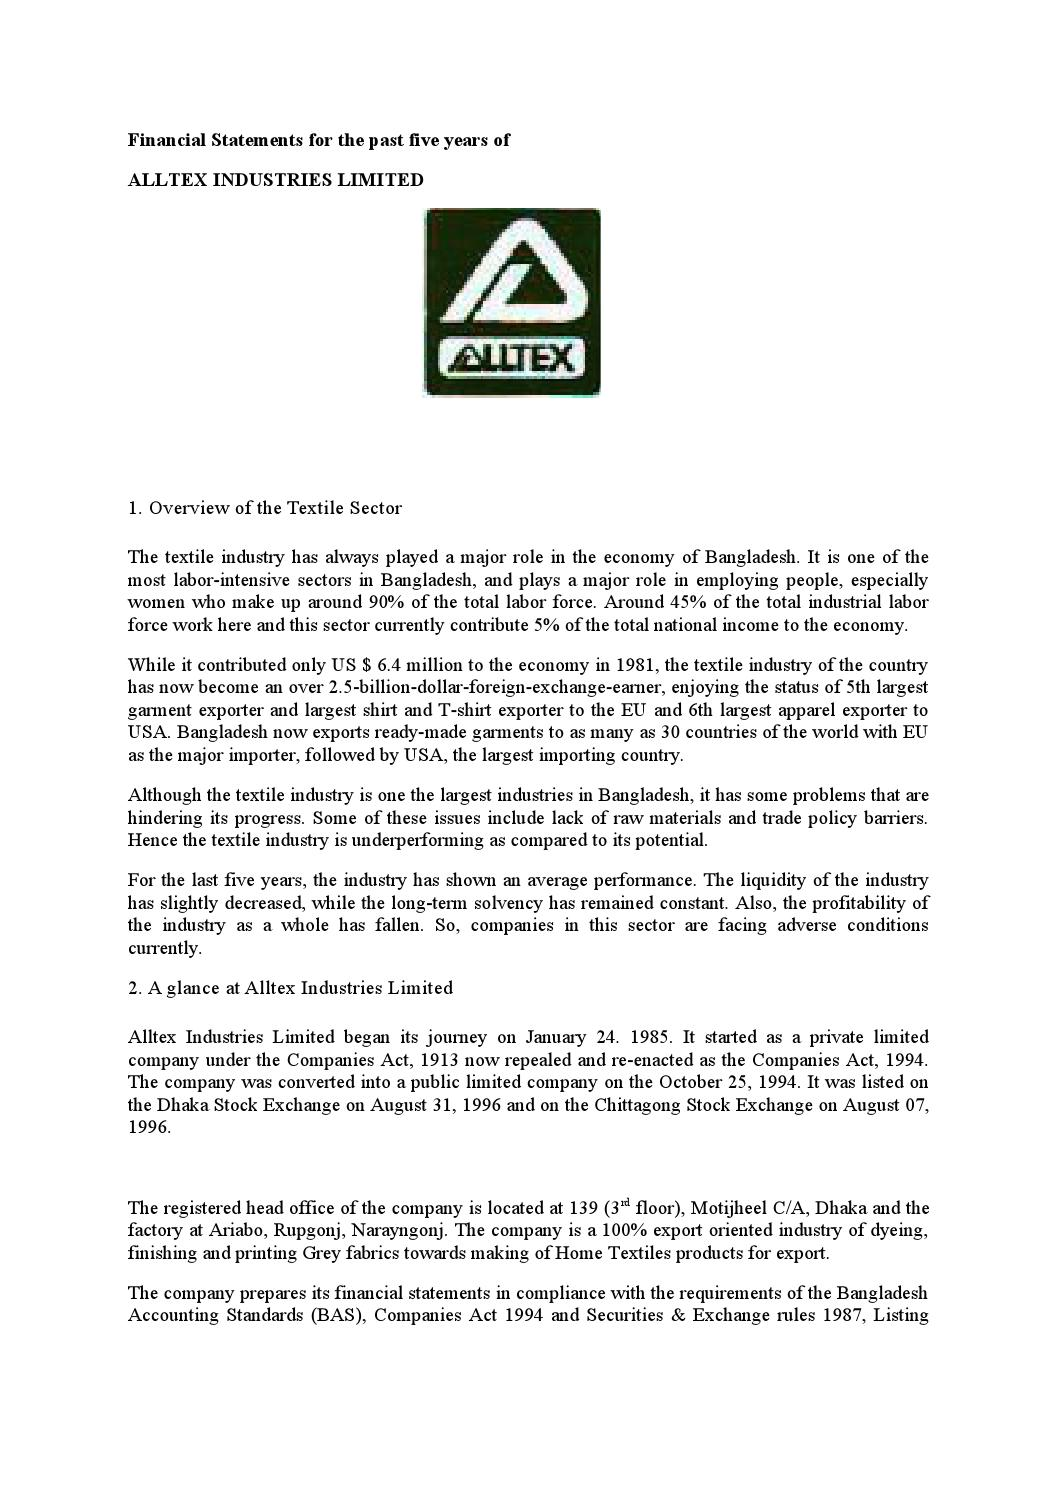 Financial statements of alltex industries limited by Md